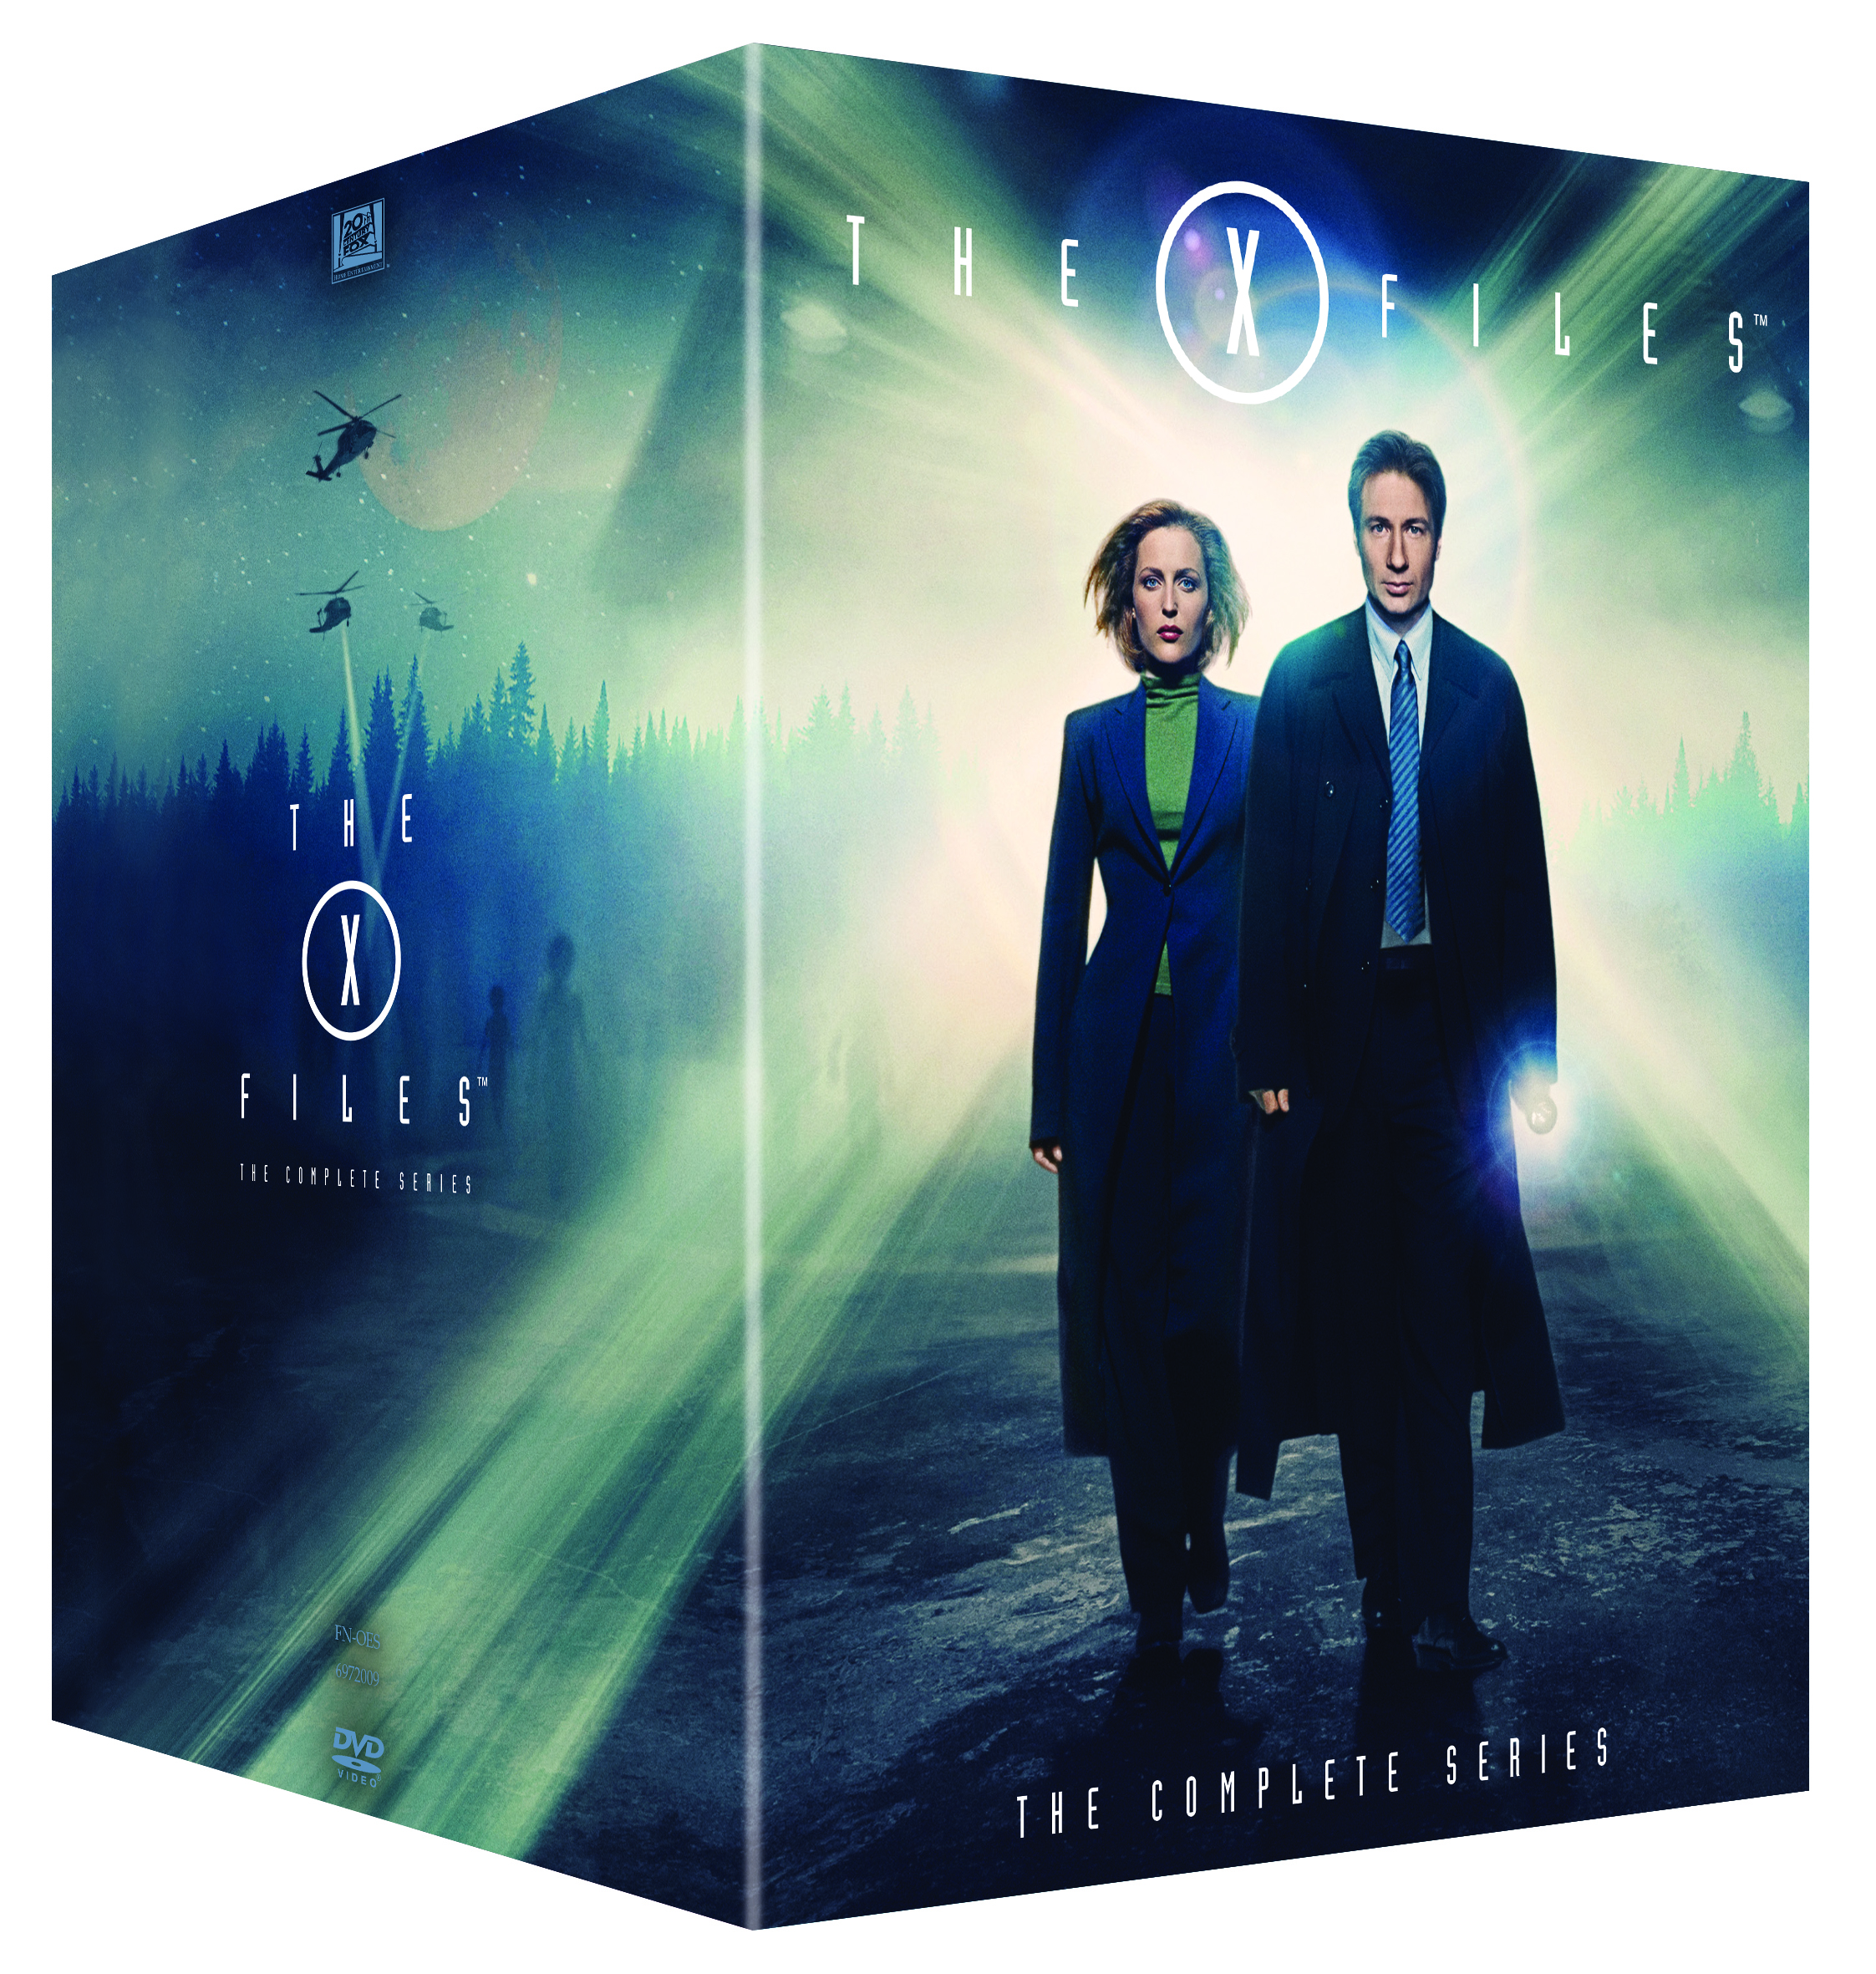 x files blu ray box set australia